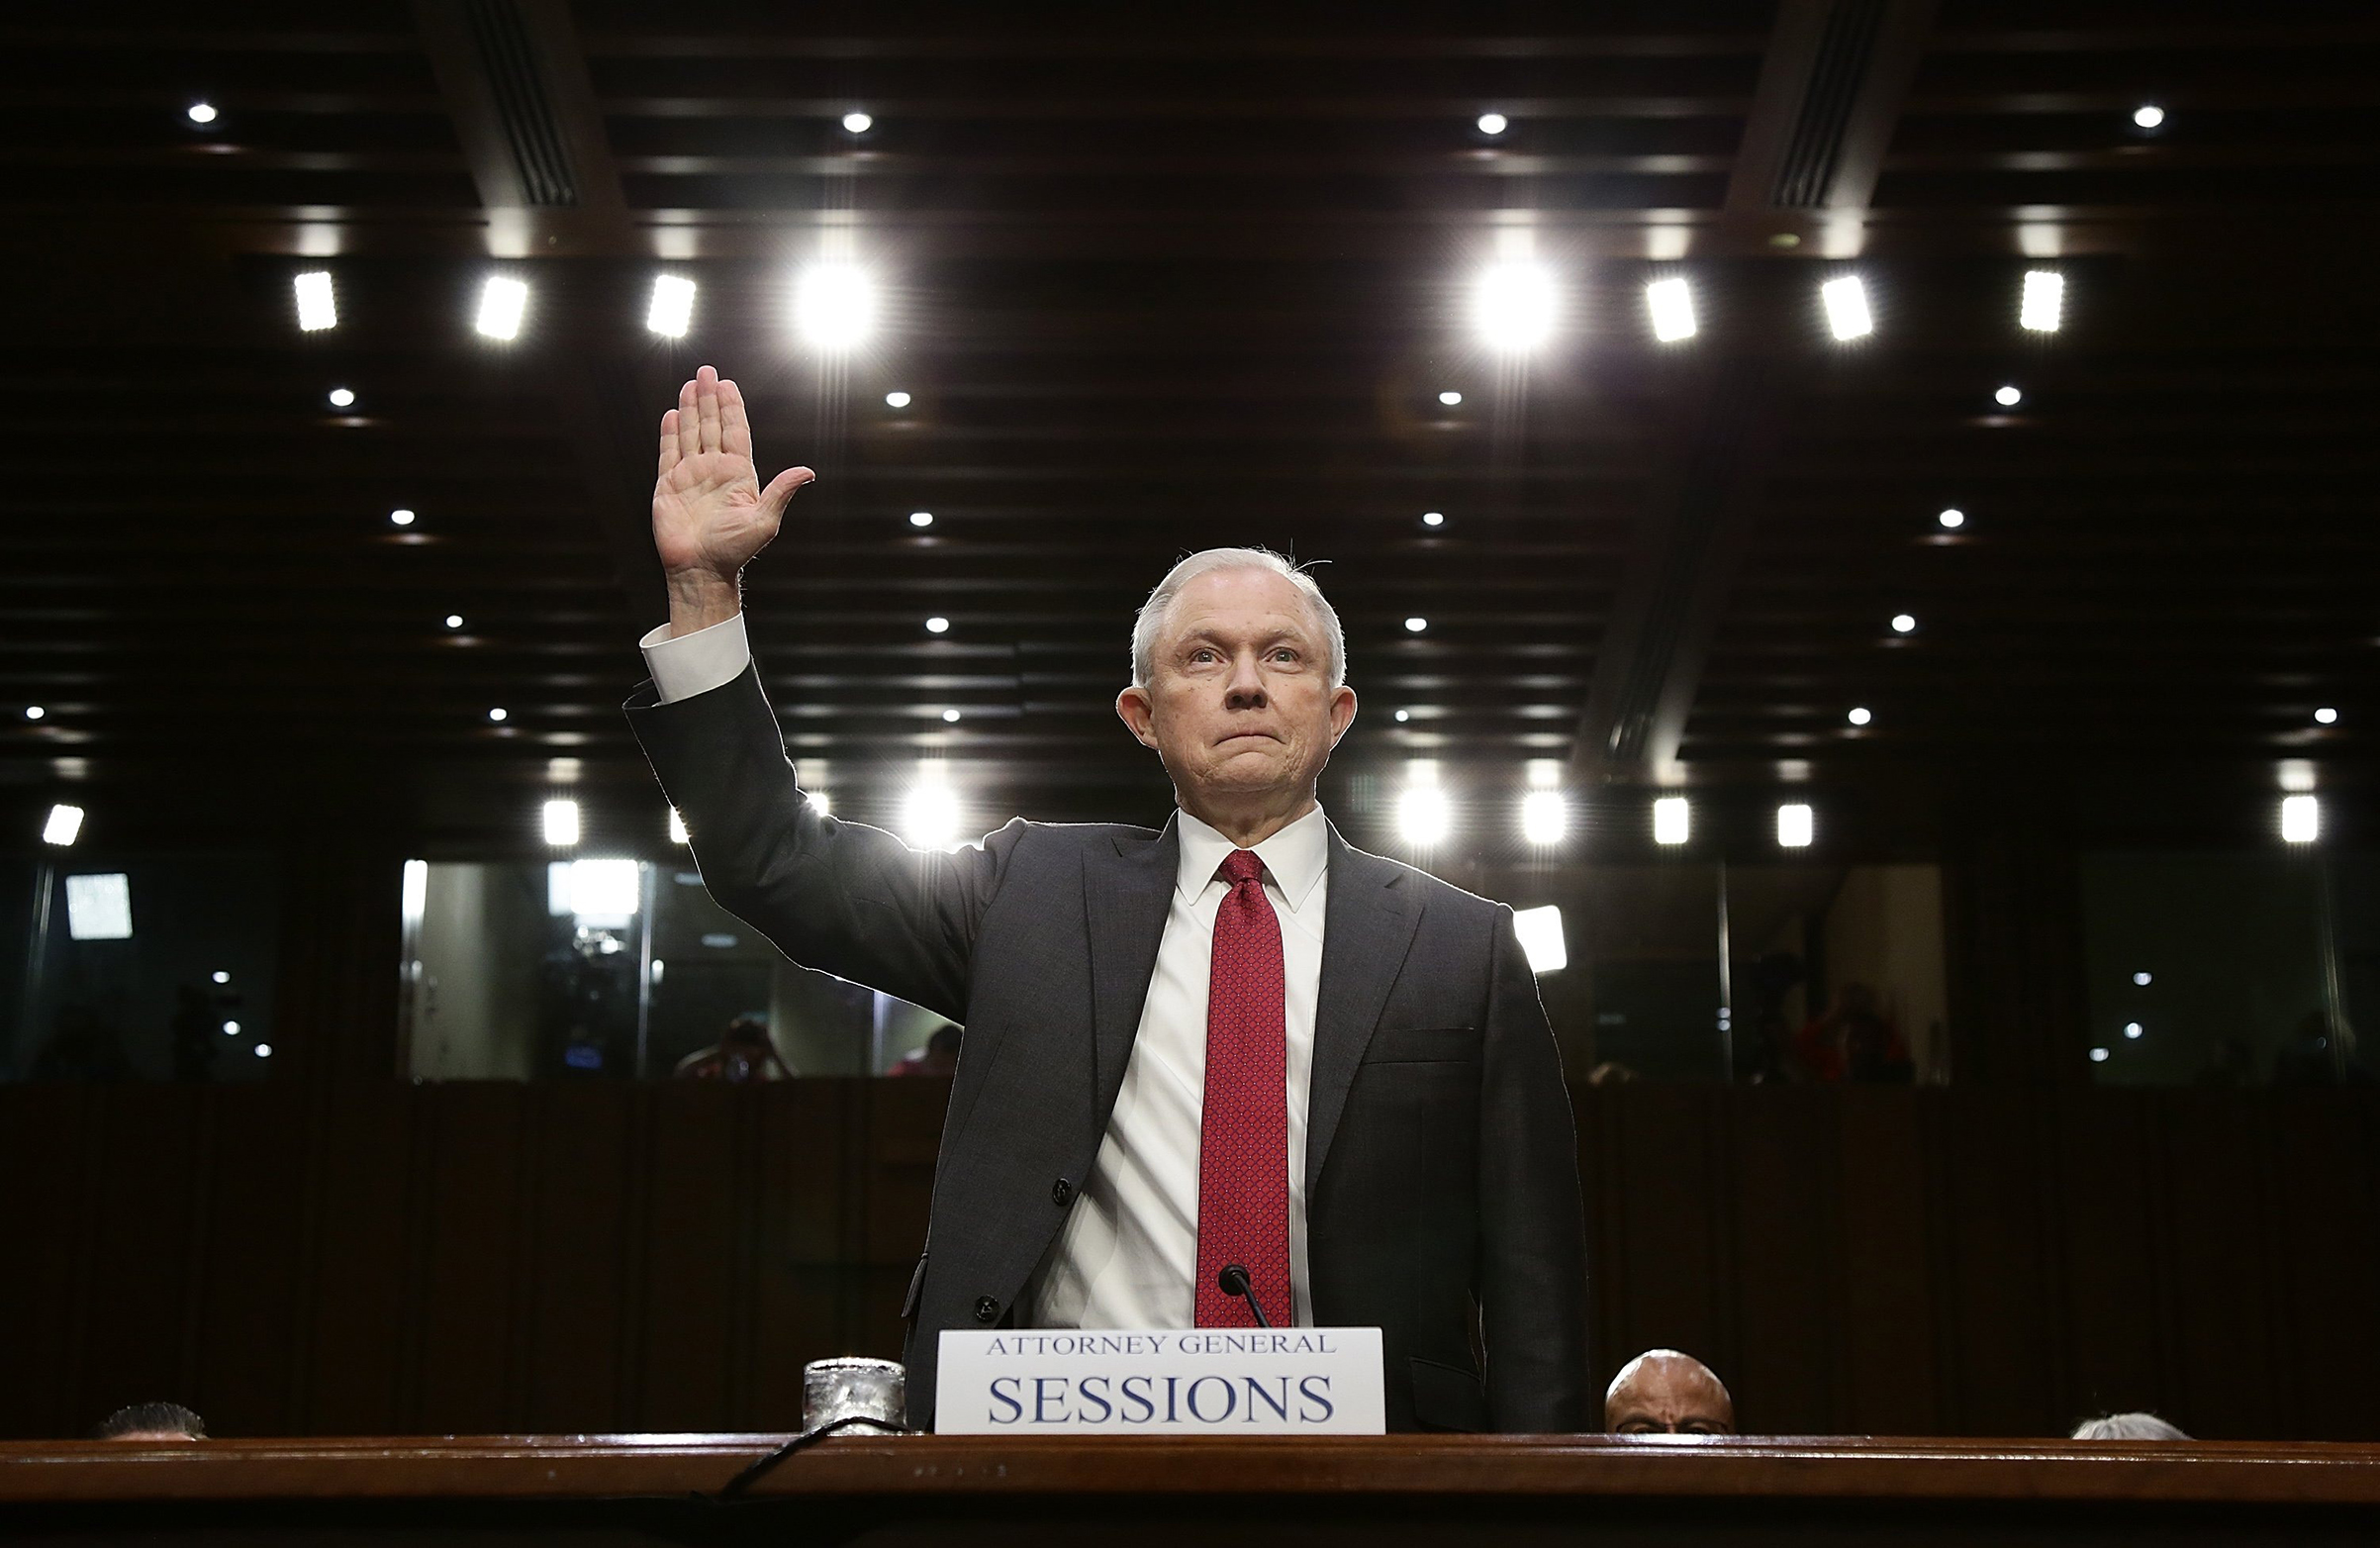 Attorney General Jeff Sessions is sworn in before the Senate Intelligence Committee on June 13, 2017.